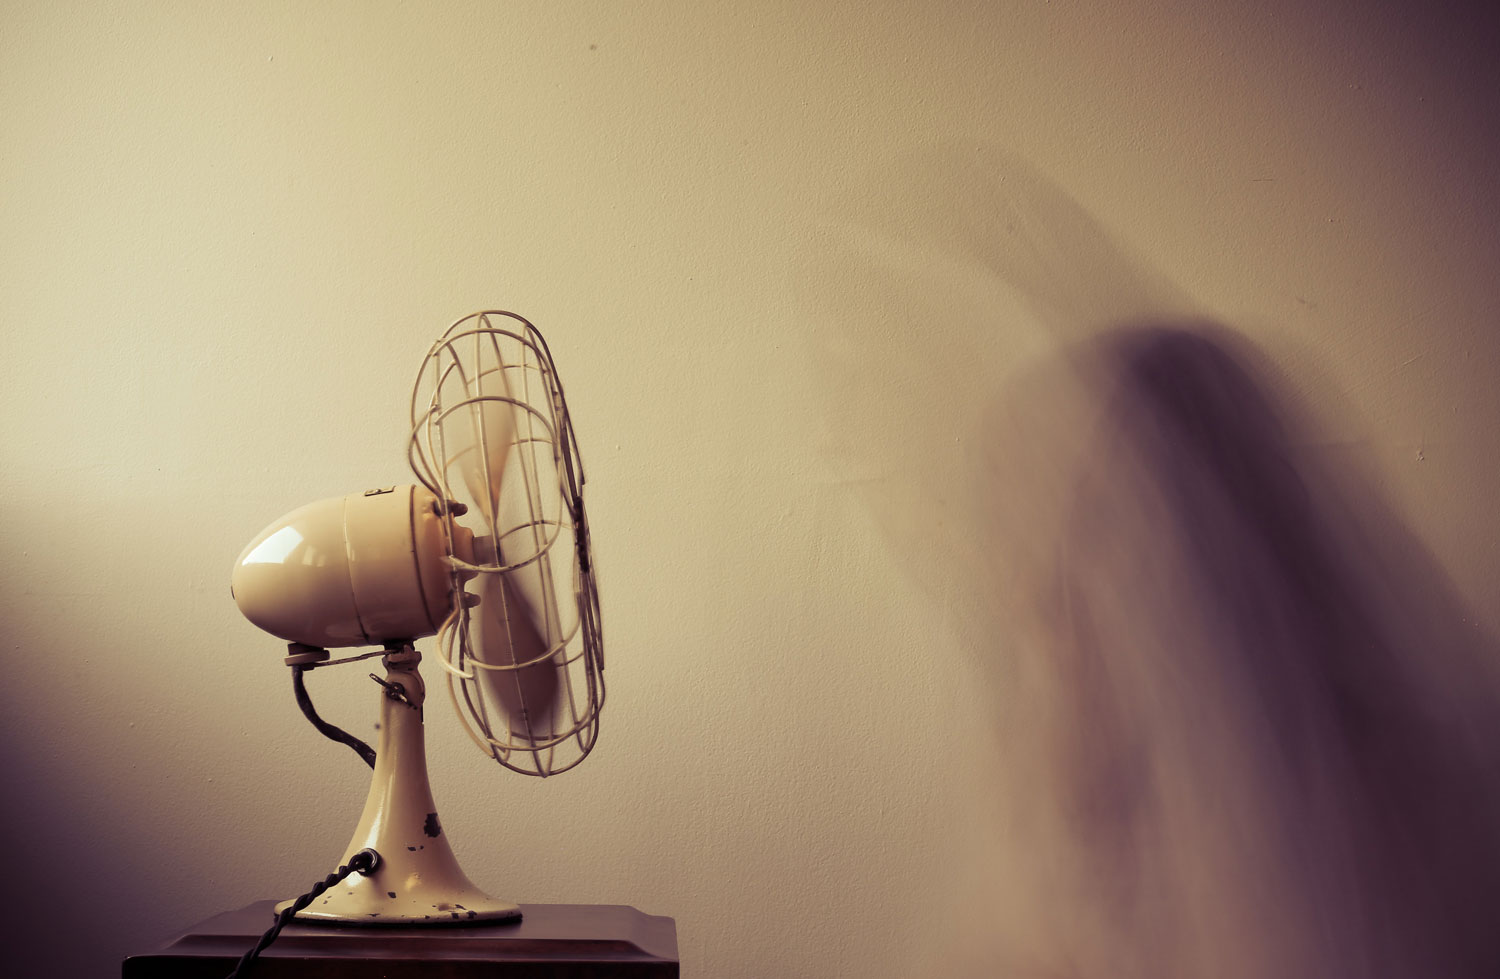 What Causes Uneven Indoor Cooling?